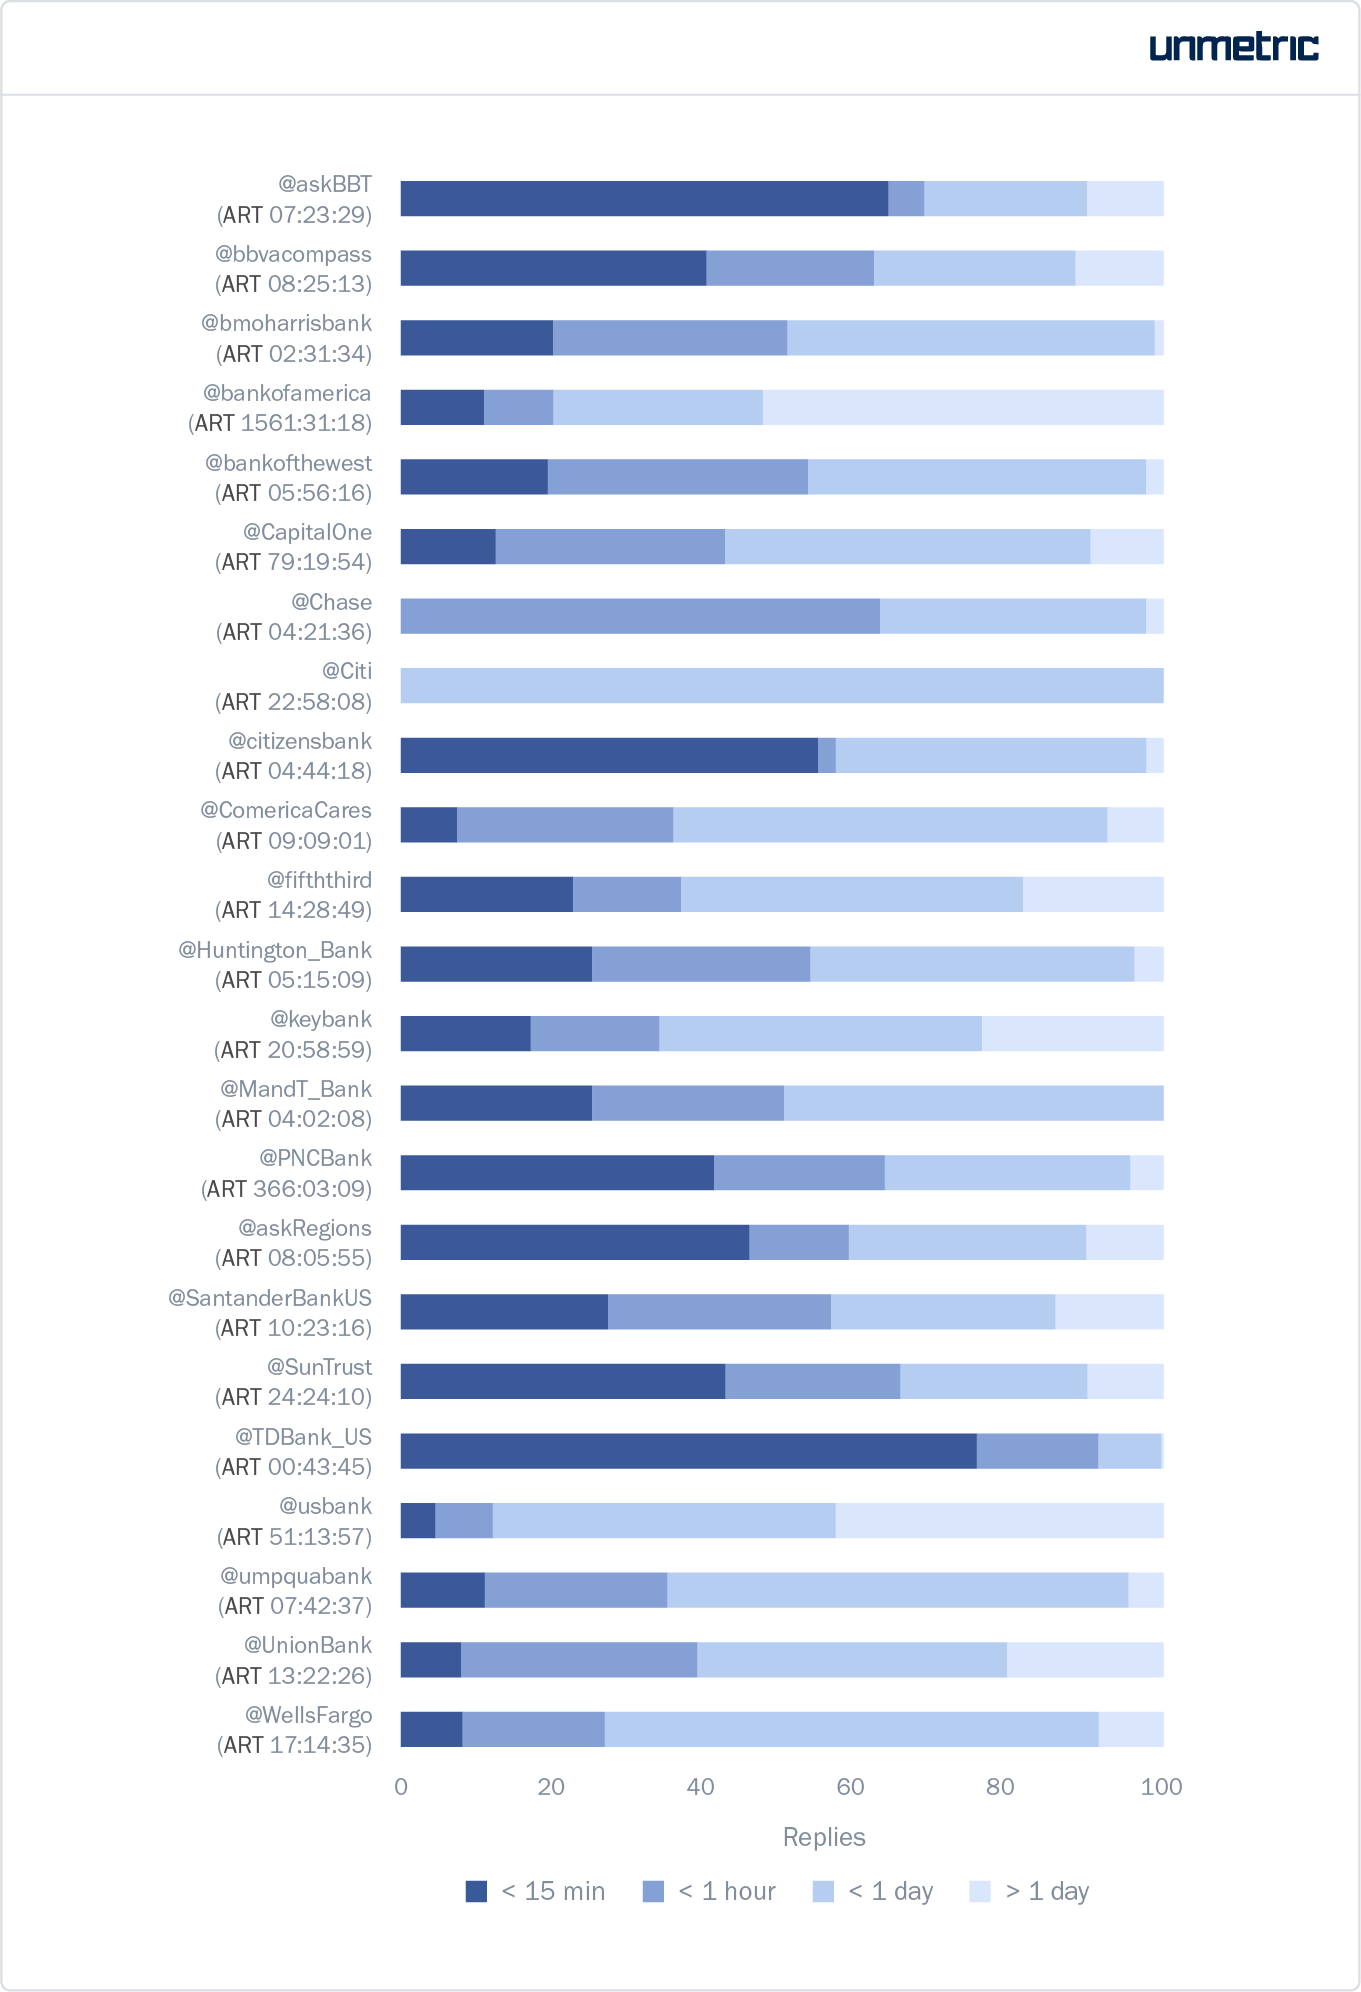 Time taken by each brand to reply to customer tweets on average